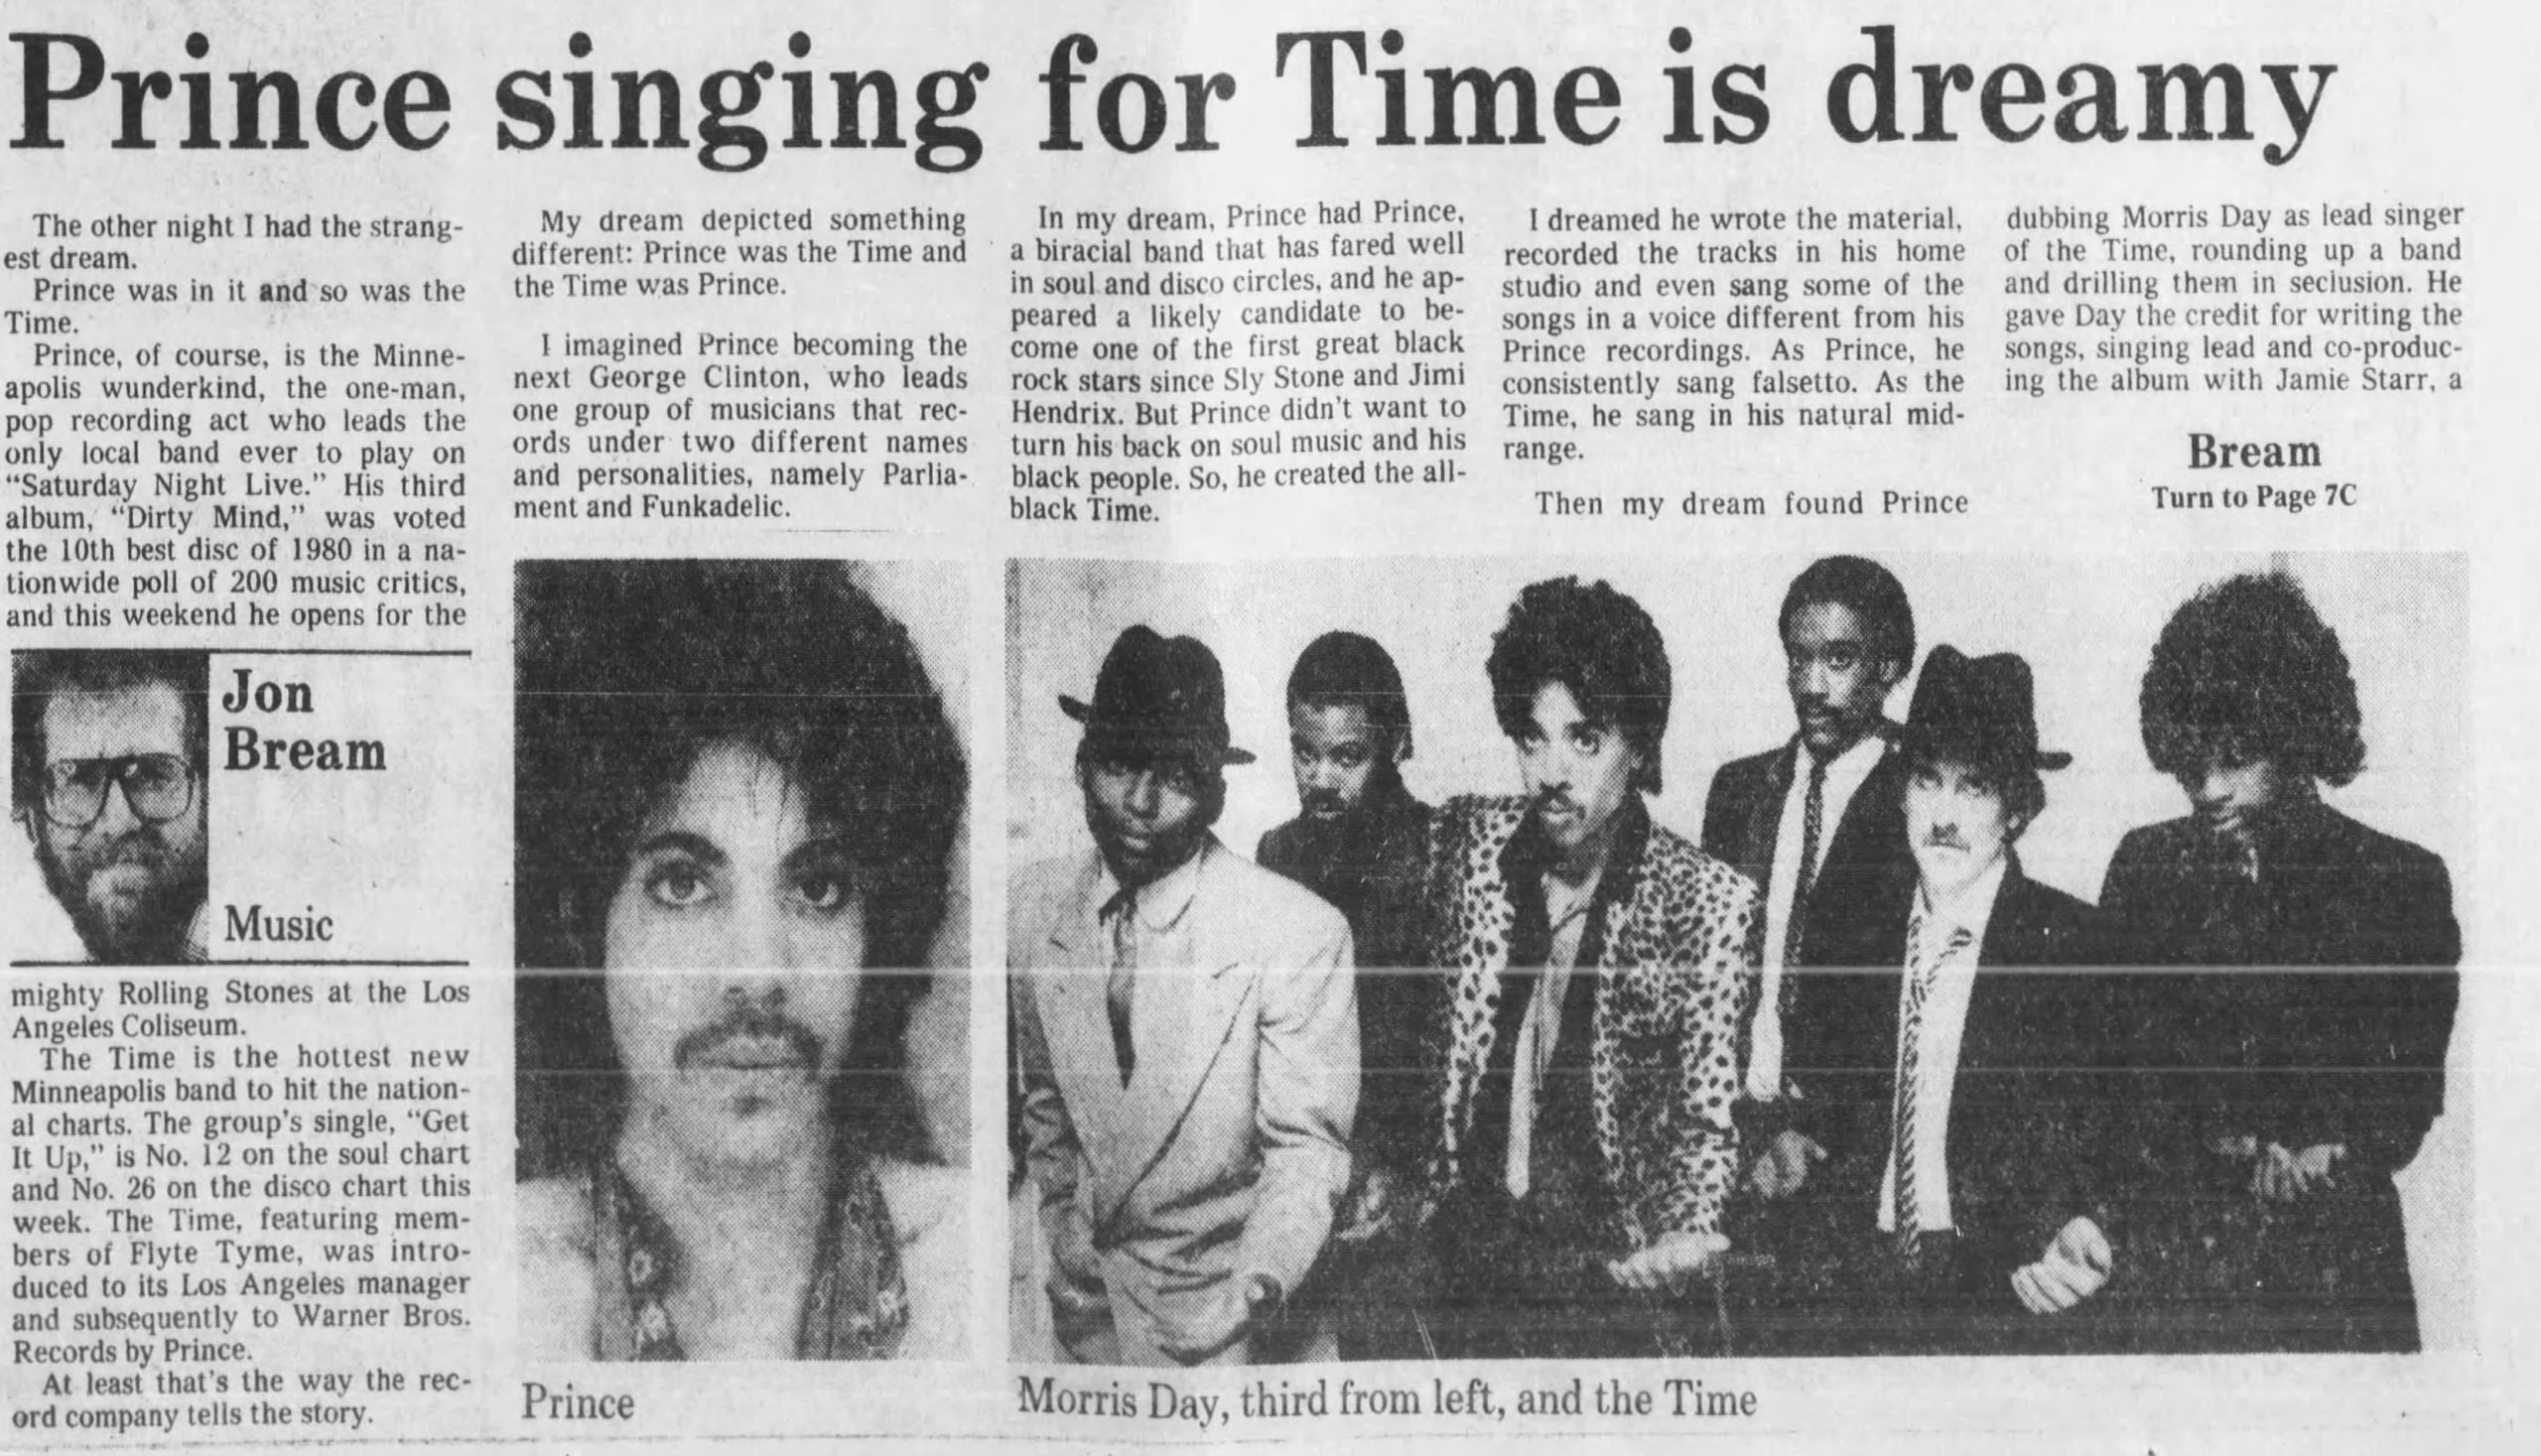 Prince Singing for Time is Dreamy by Jon Bream in The Minneapolis Star, 6 Oct 1981